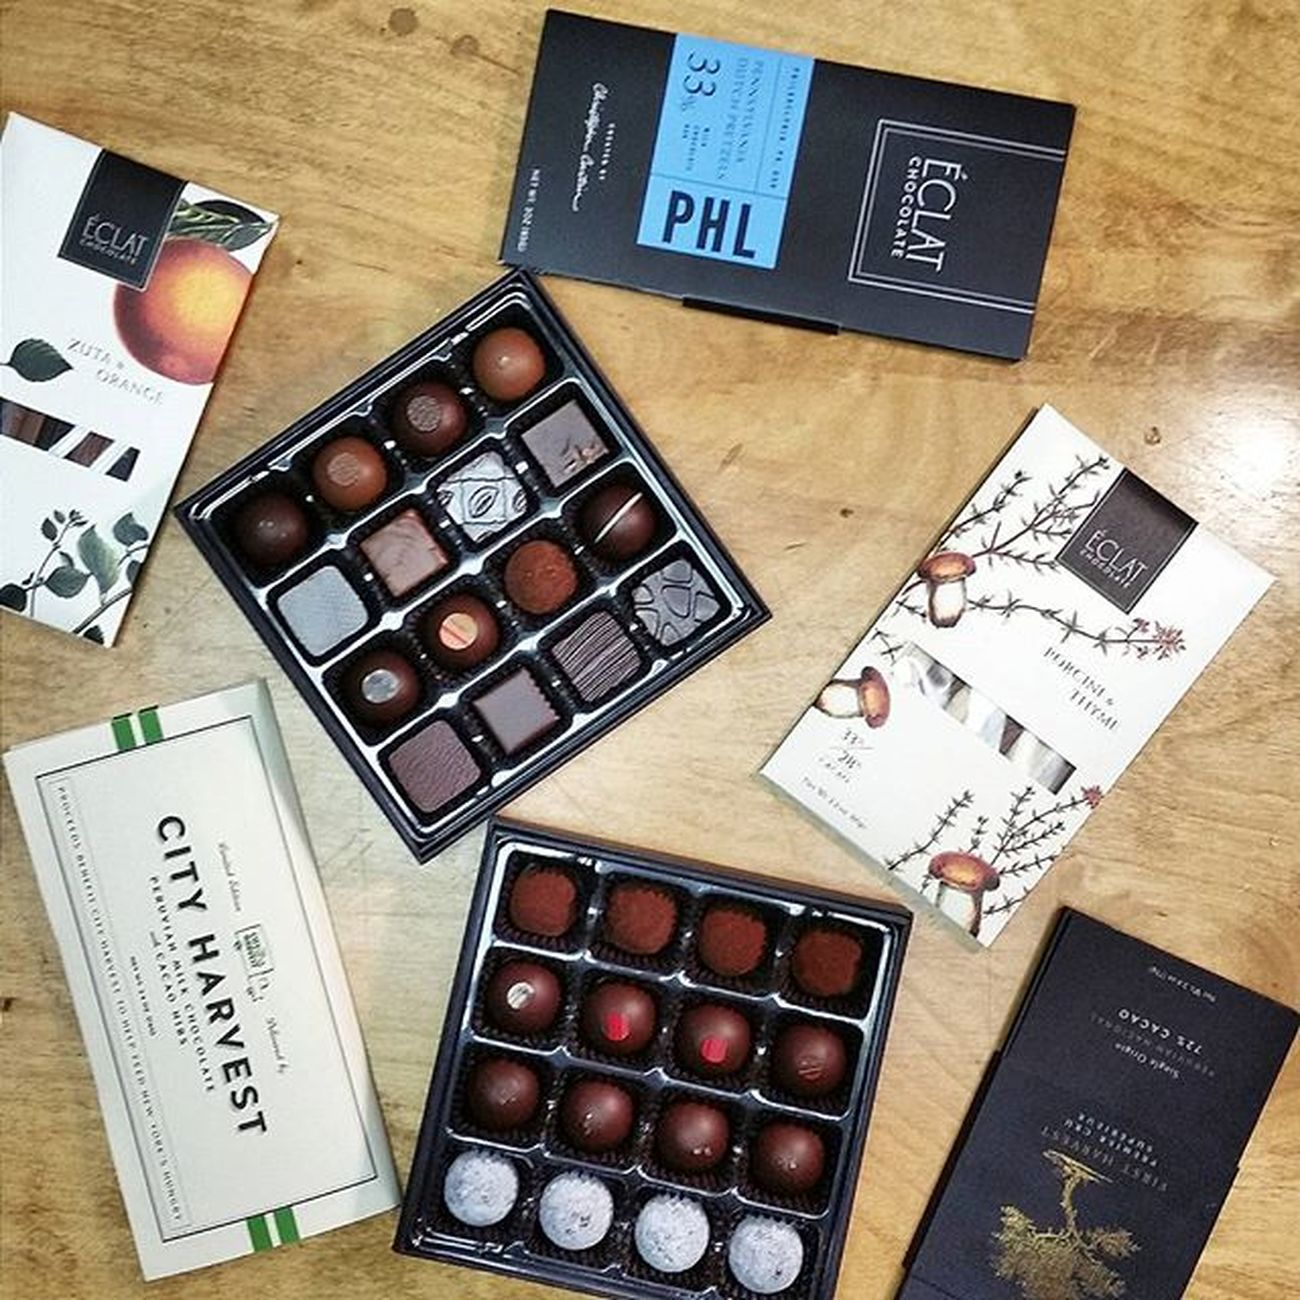 Chocolate tasting at the office today 🍫👌 Eclat Chocolate ChocolatePorn Prlife Foodpr Dailyfoodfeed Feedfeed Feedyoursoul Noleftovers Eeeeeats Foodgasm Foodstagram Yahoofood Todayfood Eater Zagat Philly F52grams Tastingtable Foodphotography